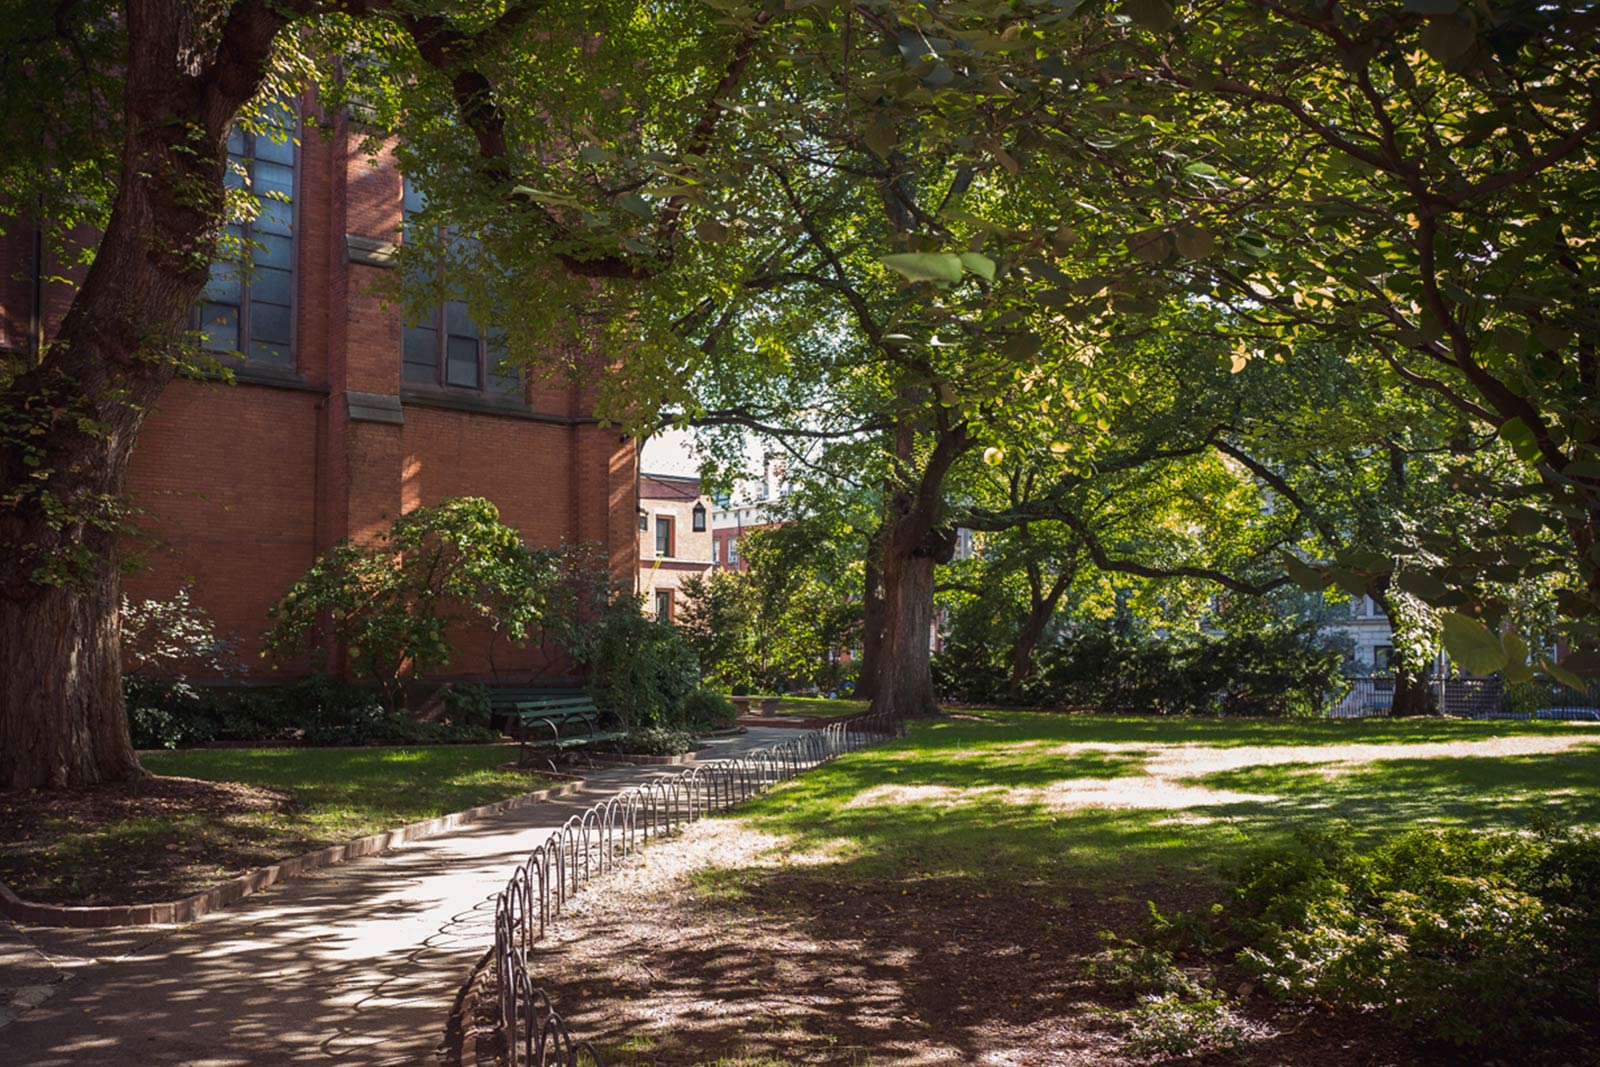 In the Heart of the City - Complimenting the beauty of the Close is its location. Being in the heart of the city allows you the opportunity to go out and engage in anything that New York City has to offer, and then return home to the Close where you'll feel at peace and ready to relax, study, learn and live in community.